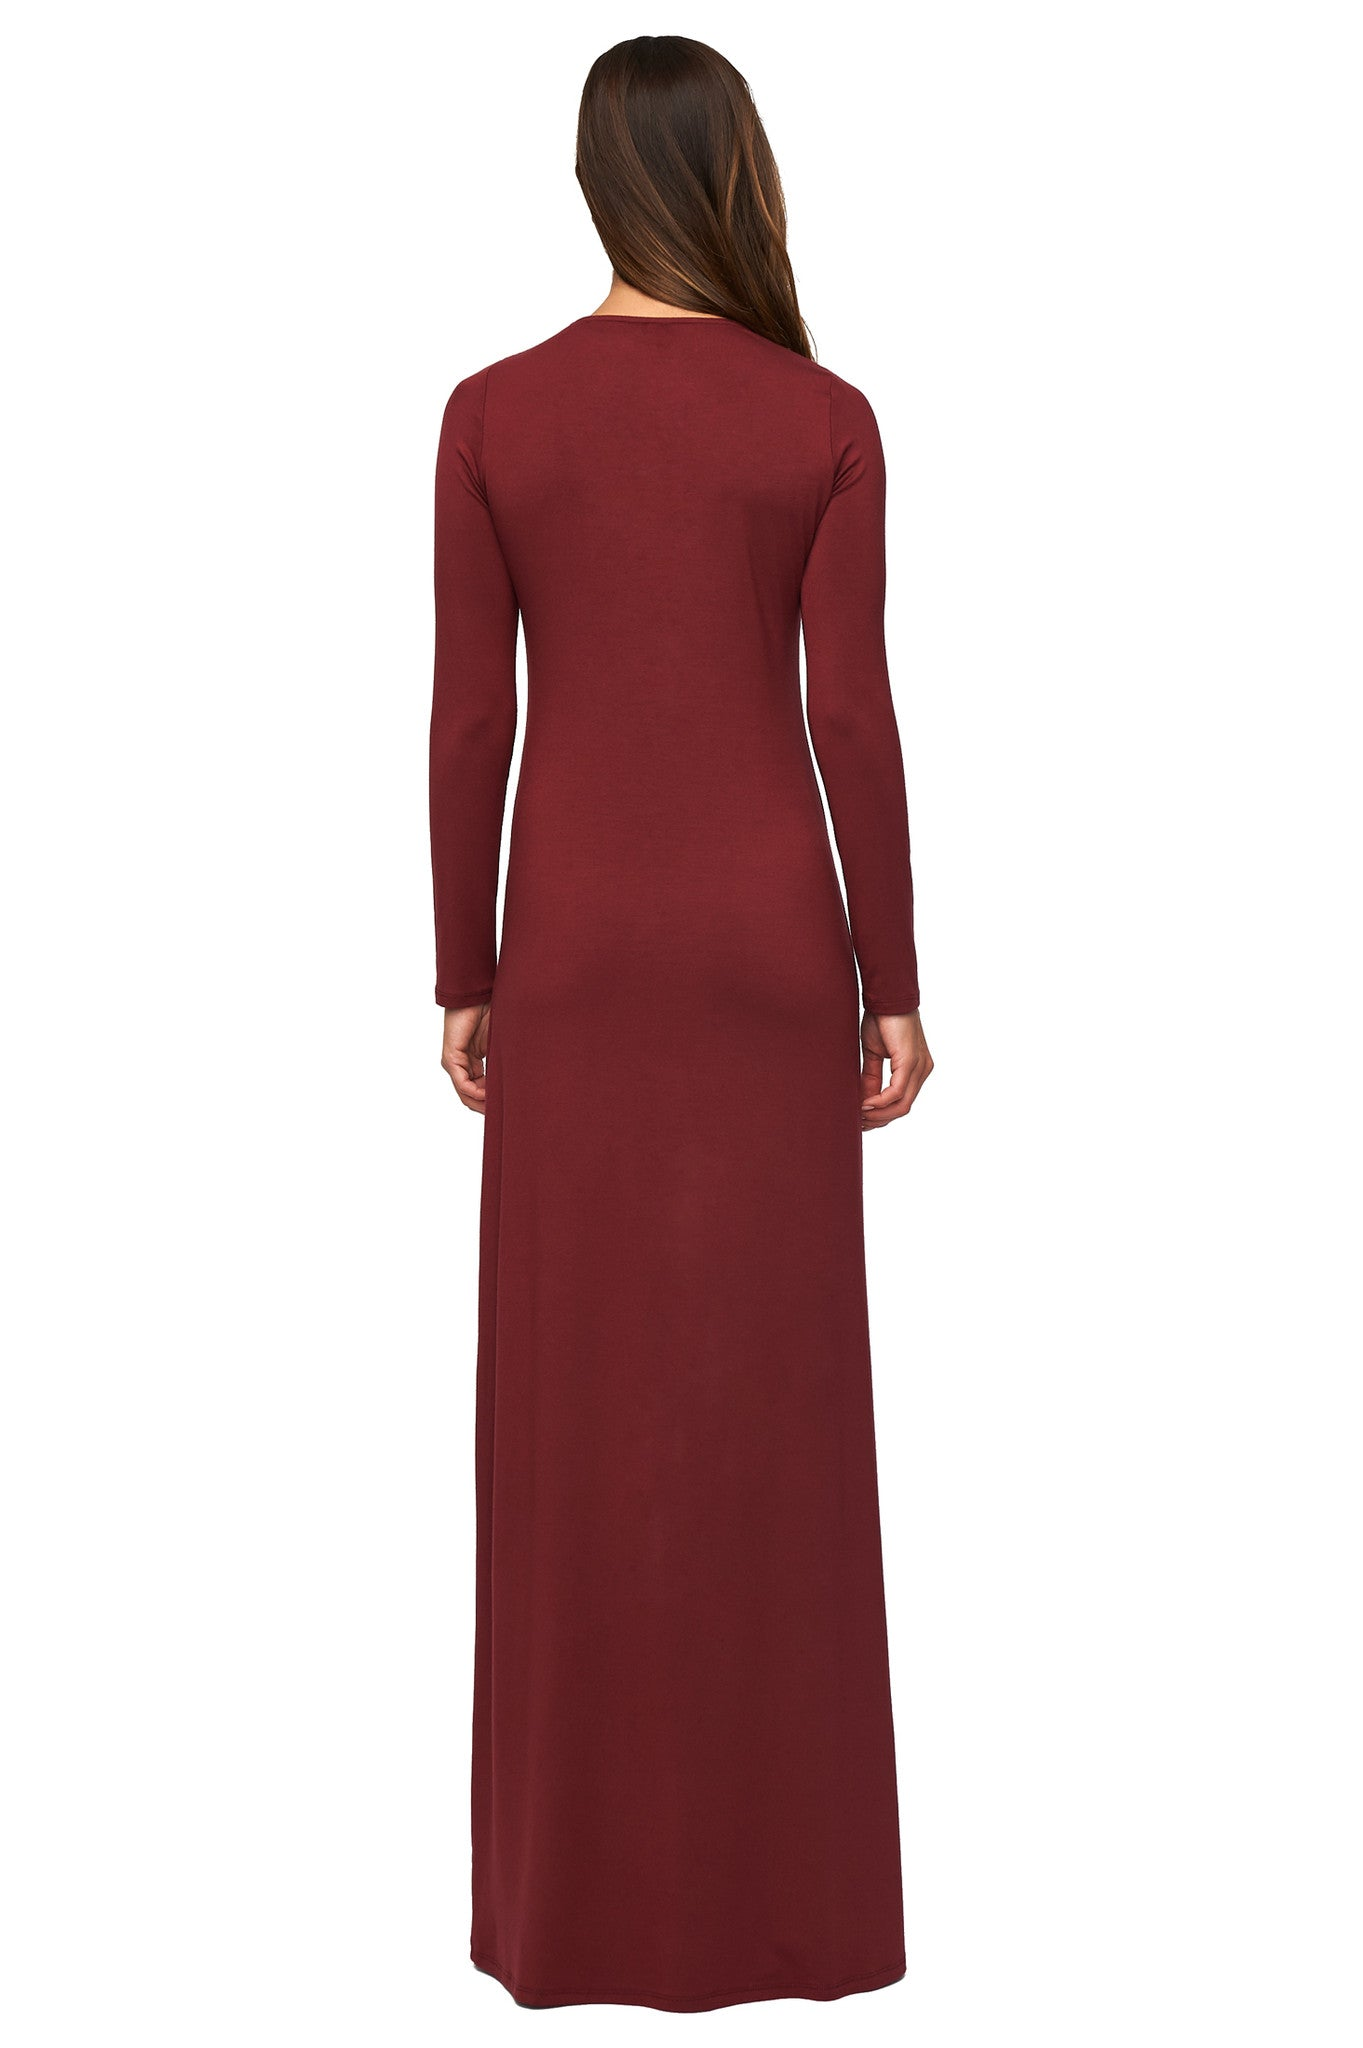 Long Sleeve Jolene Dress - Heirloom